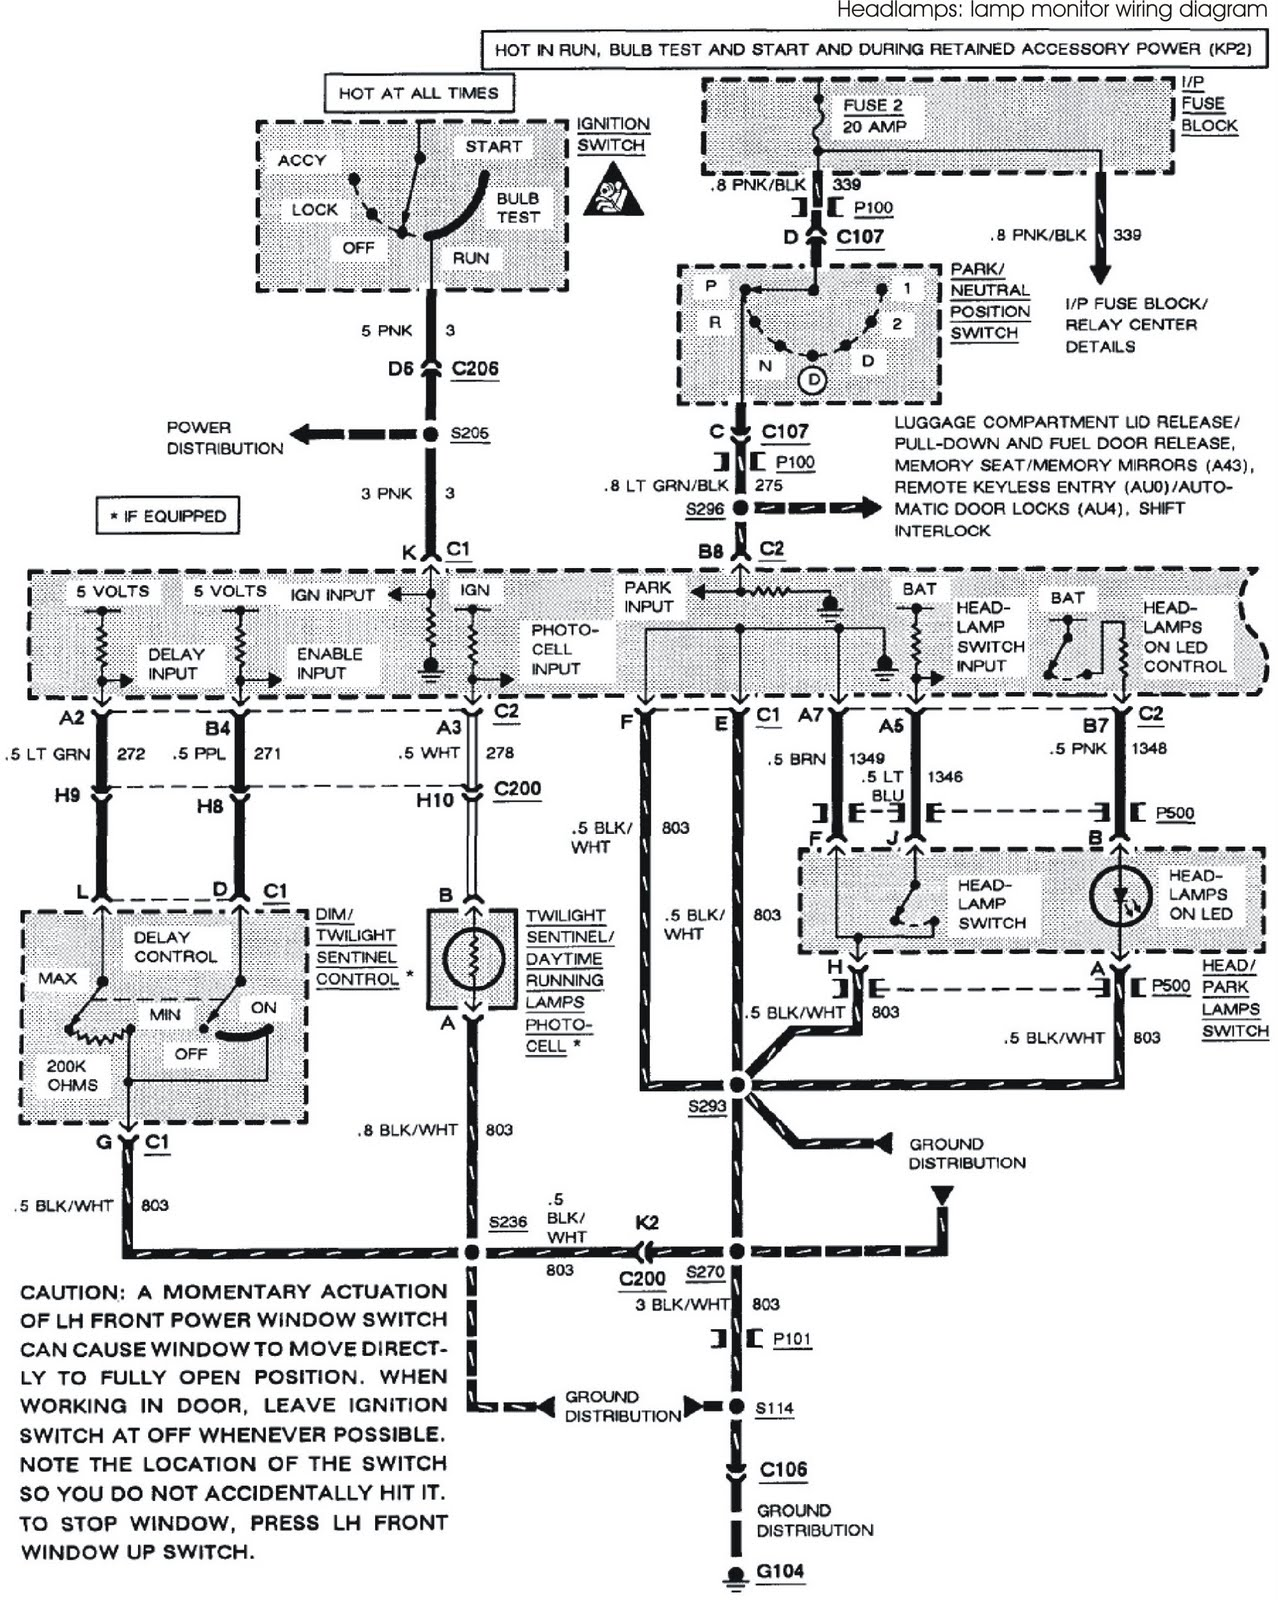 Volkswagen Polo 9n Wiring Diagram Library Vw 1 4 16v Electrical Diagrams Pdf Fancy 02 Passat Radio